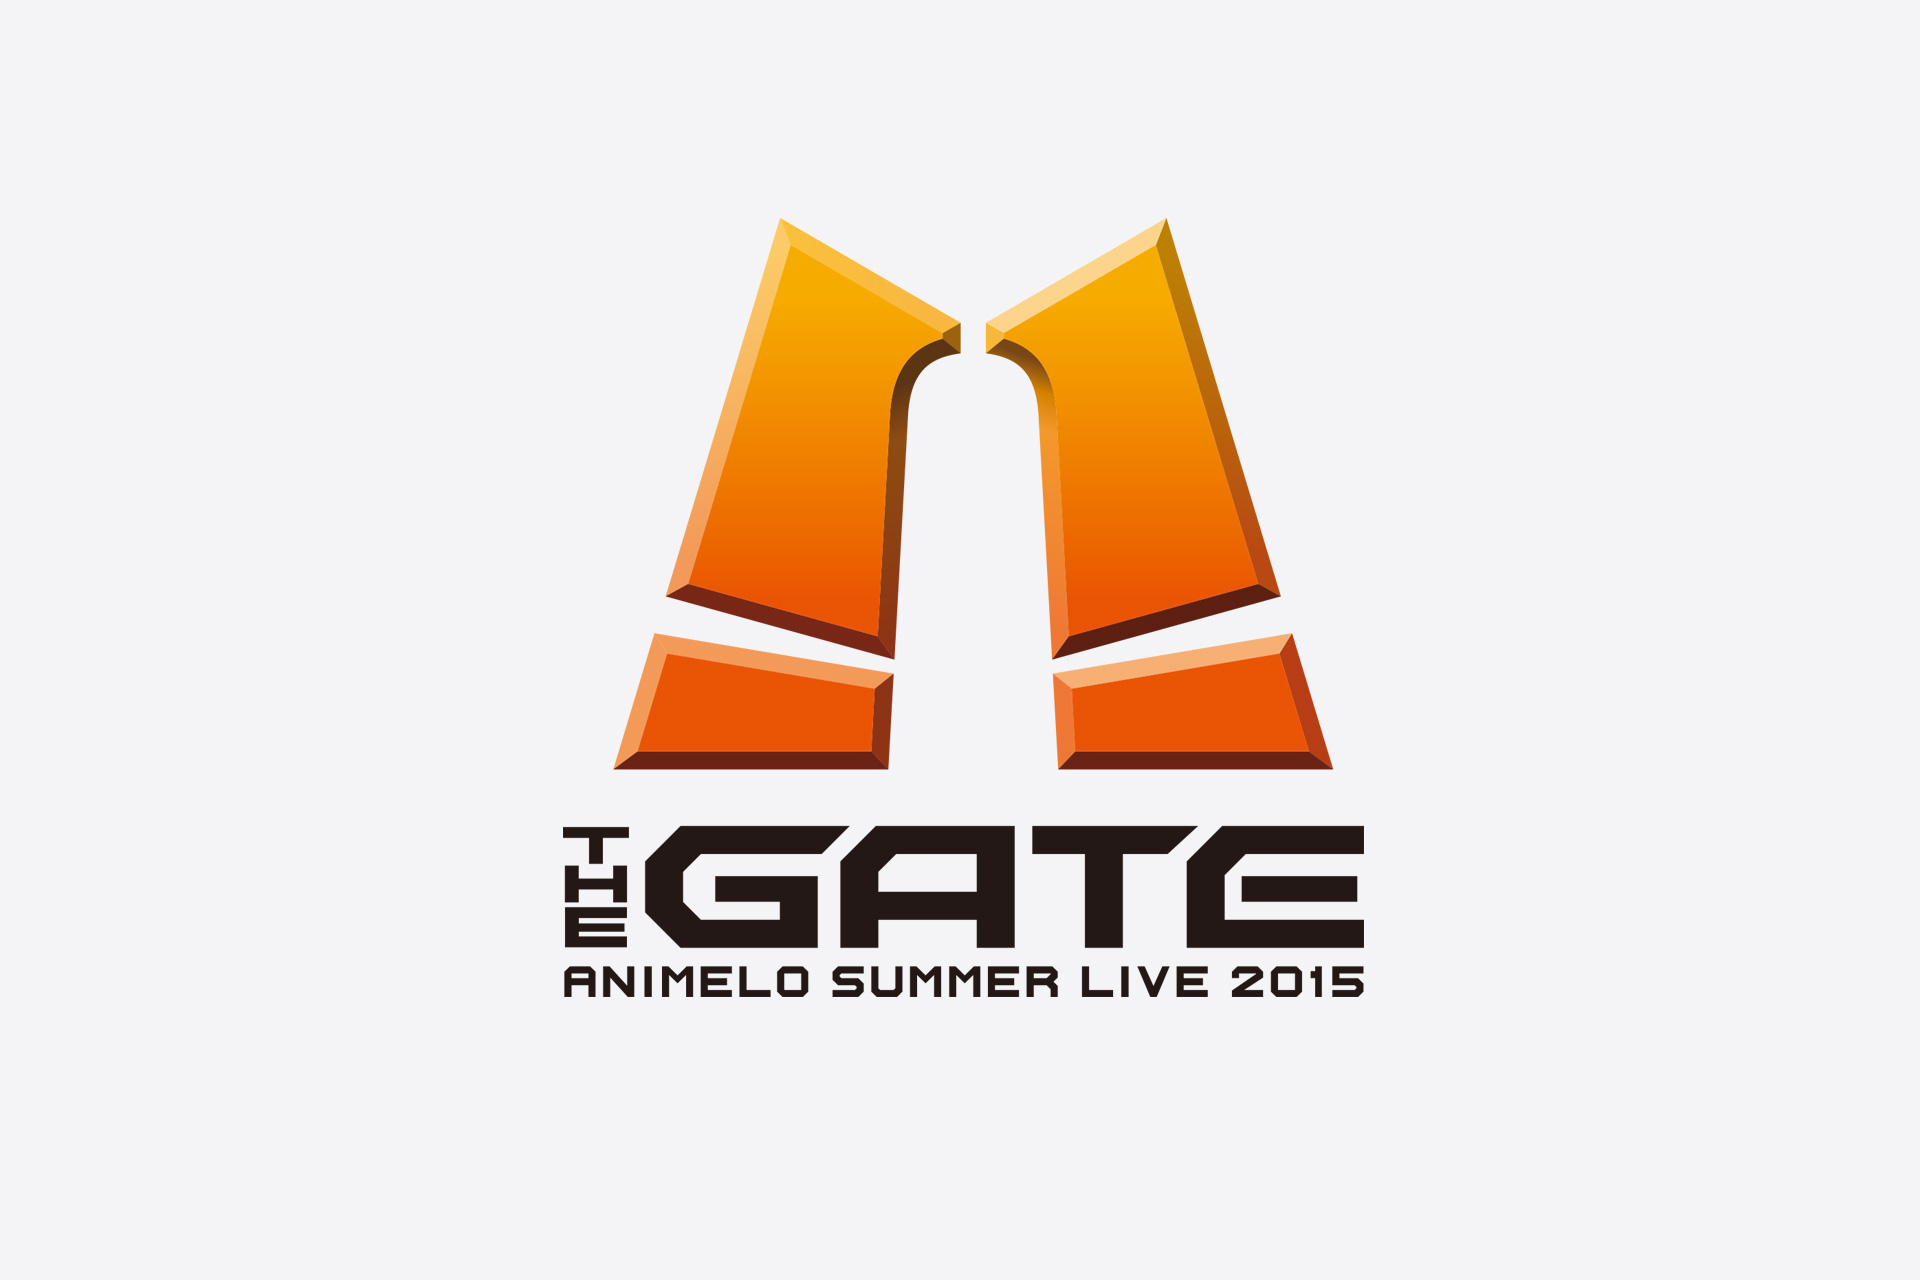 ANIMELO SUMMER LIVE 2015 THE GATE